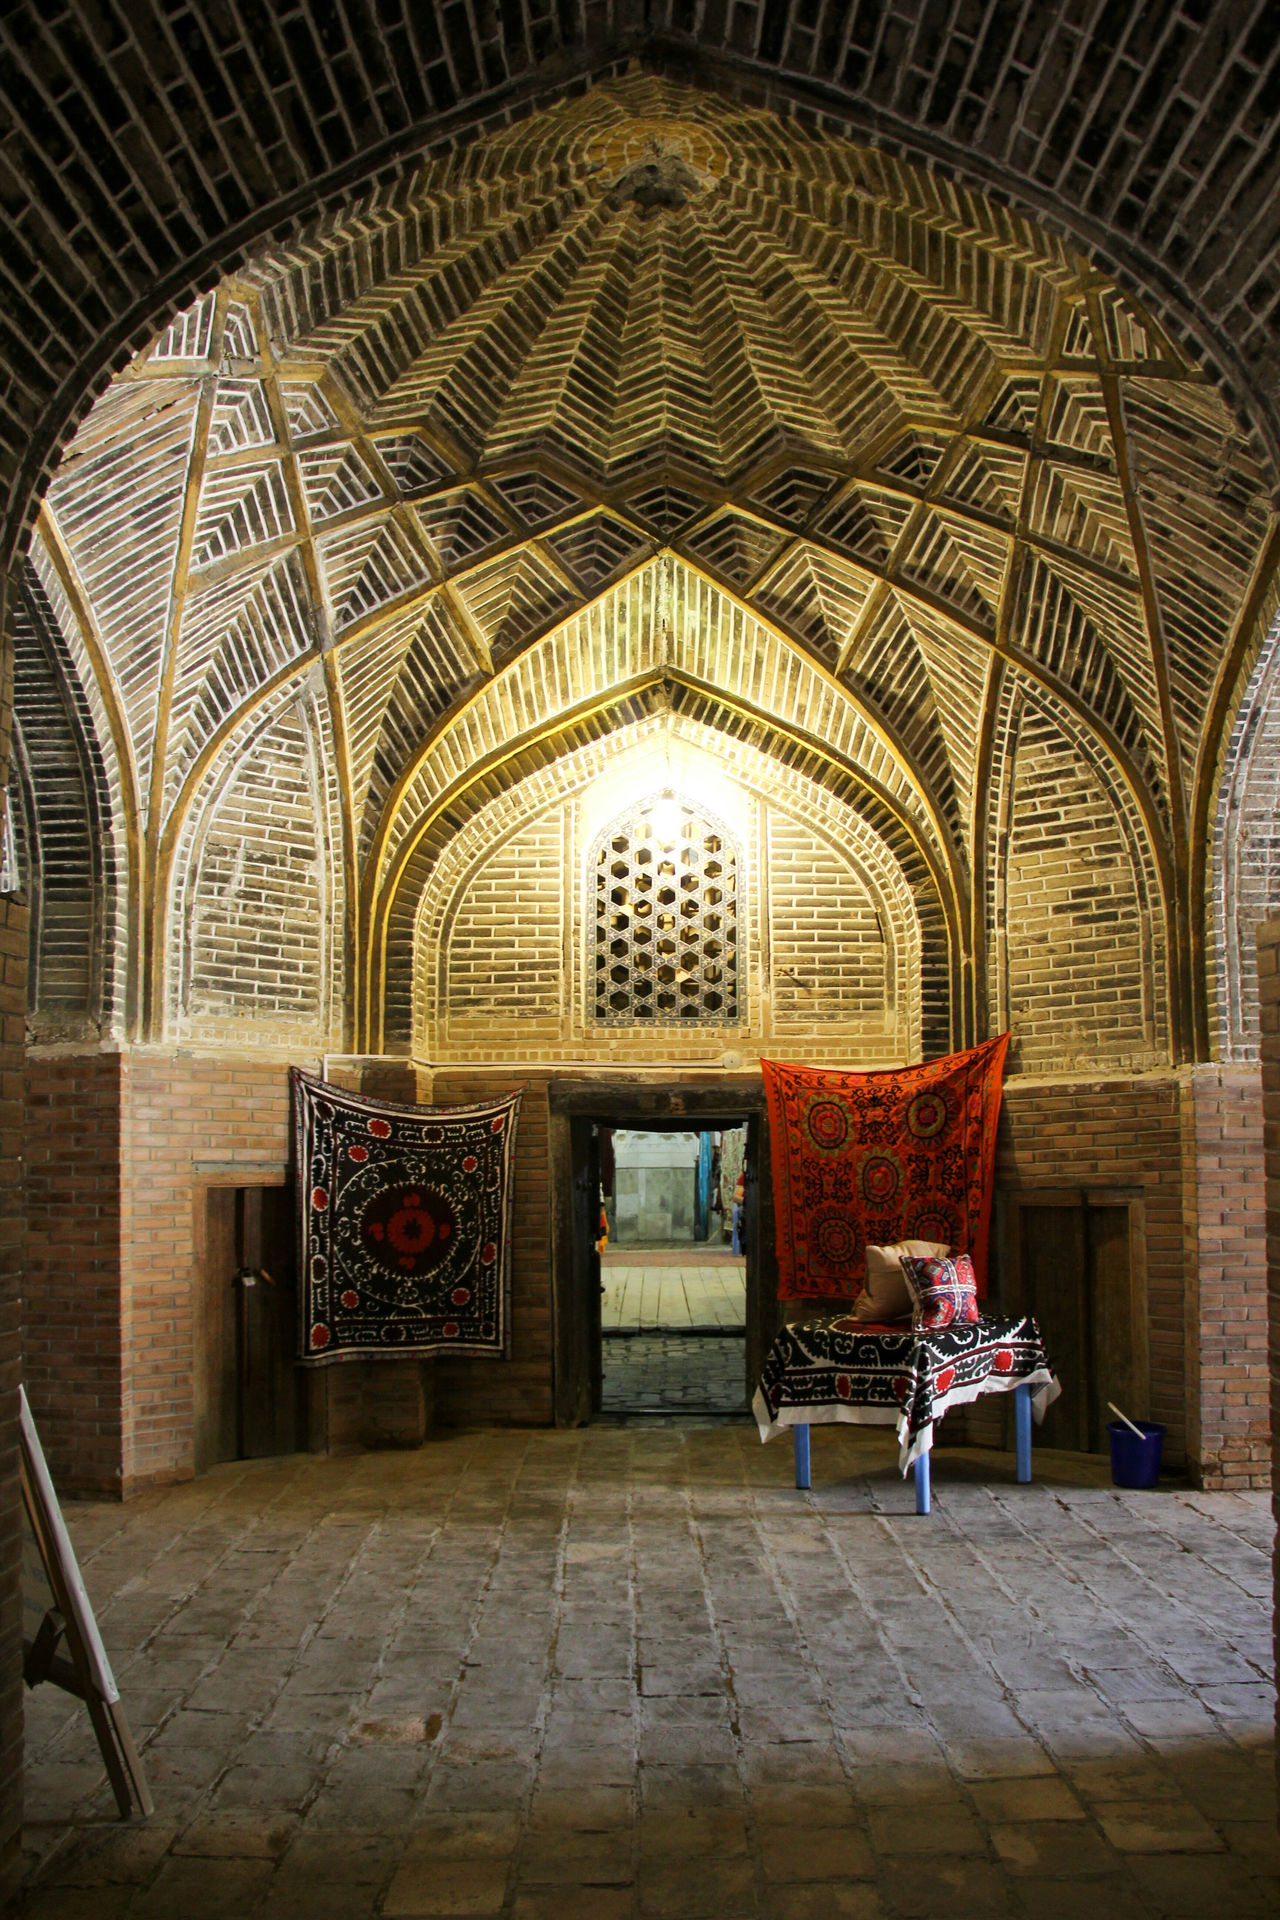 Adult Arch Architecture Built Structure Bukhara Day Full Length History Indoors  Islamic Islamic Architecture Islamic Art Madrassa Place Of Worship Religion Silk Road Travel Destinations Uzbekistan